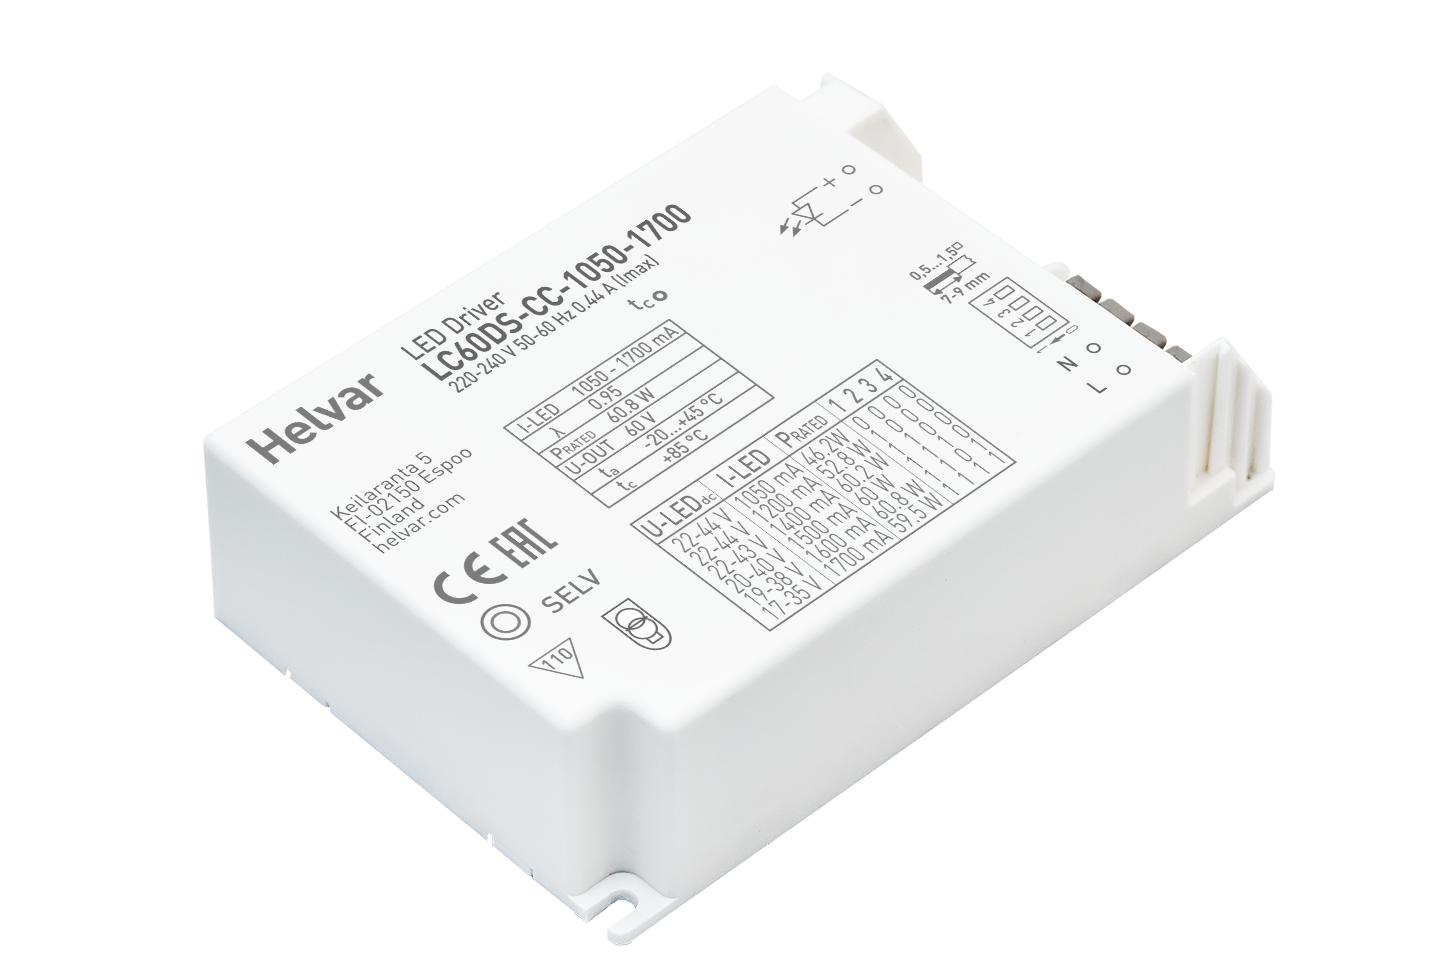 Non-dimmable LED driver